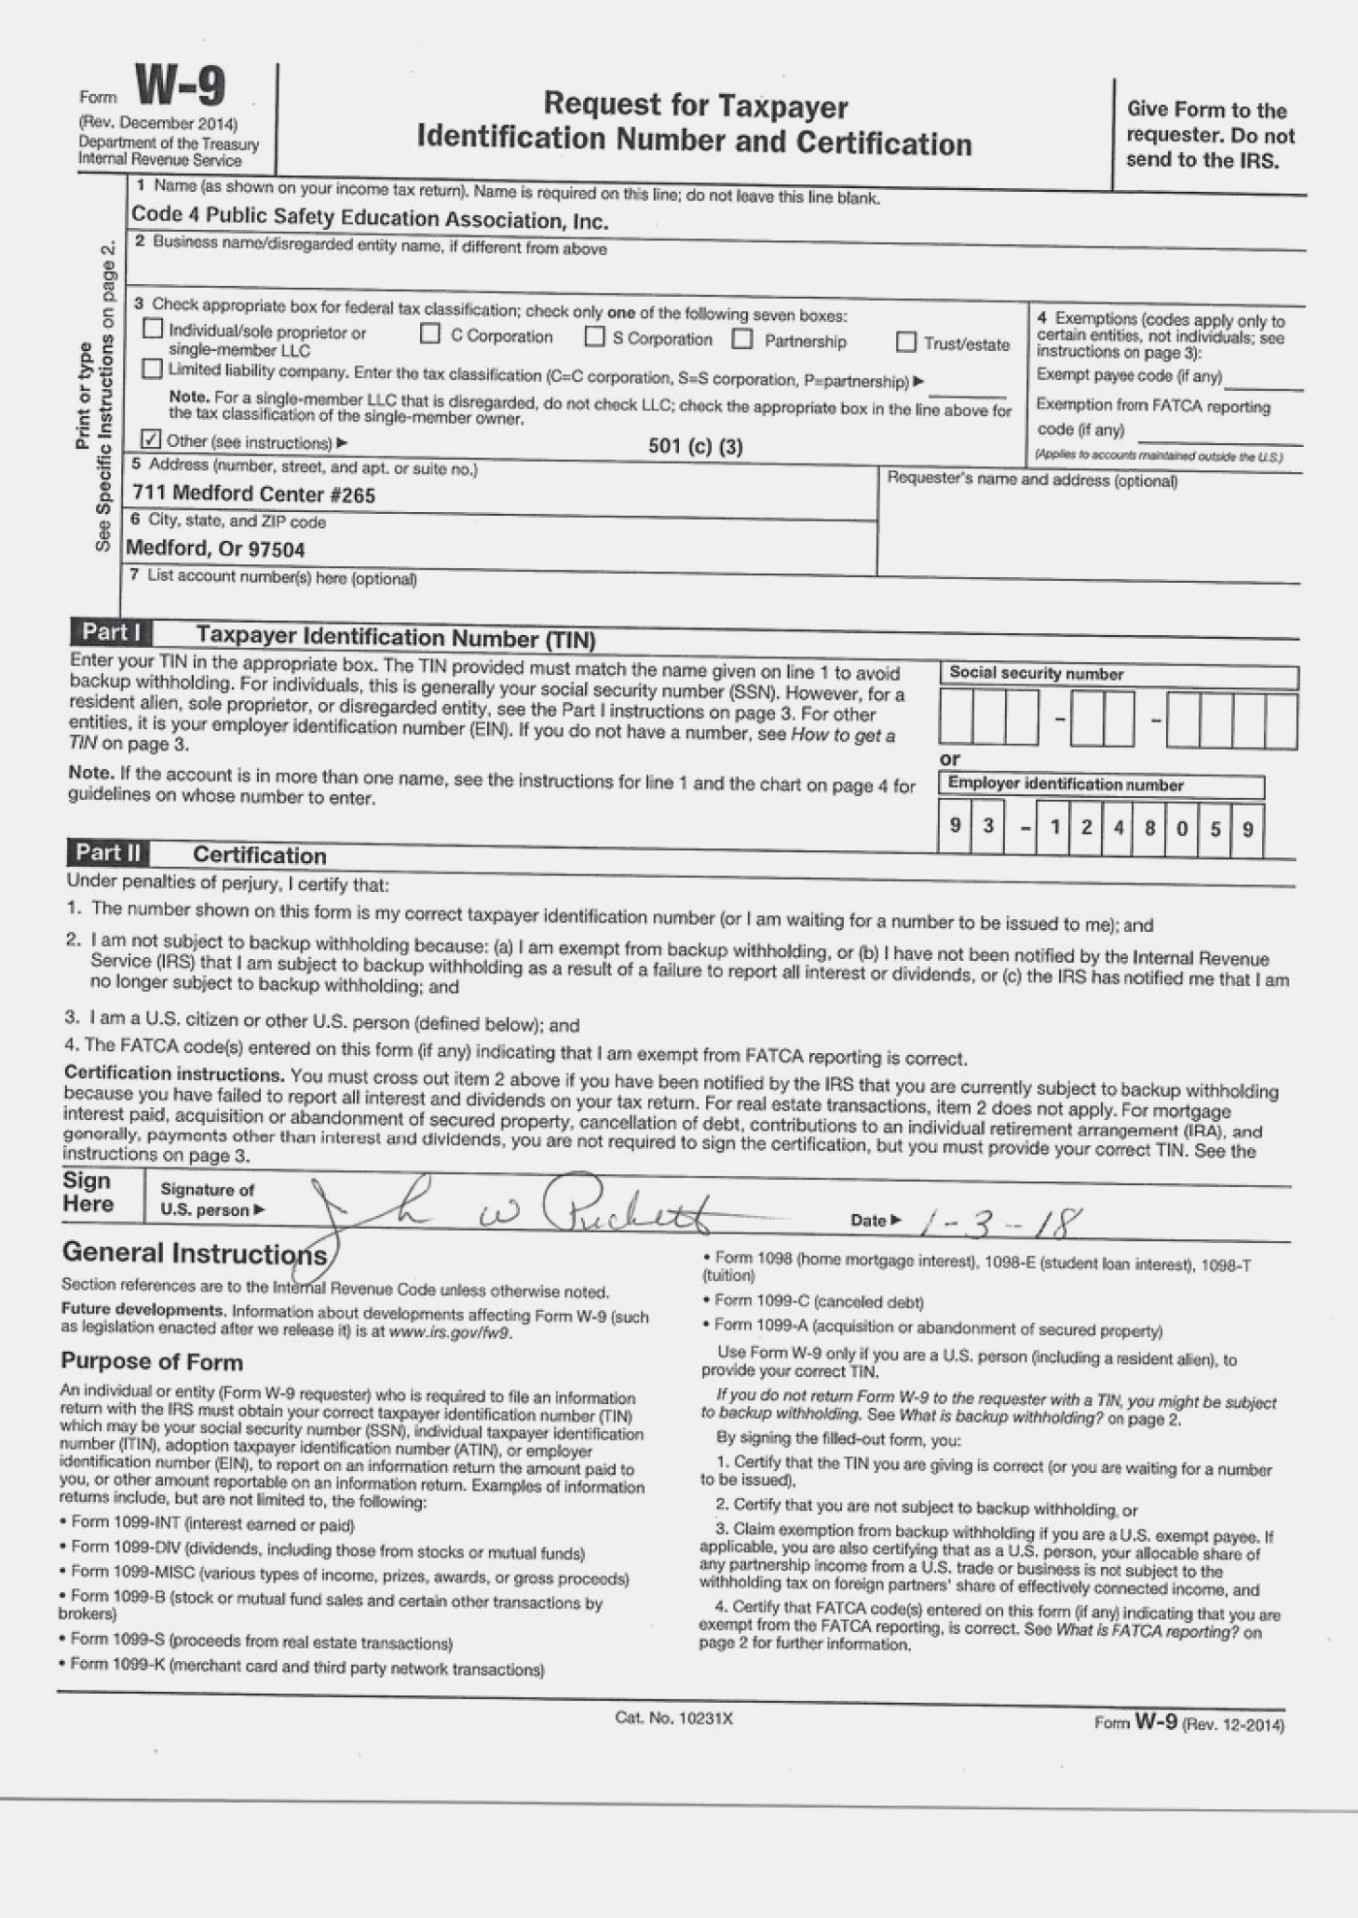 W9 Form Printable, Fillable, Blank 2019 & 2020 intended for Irs Printable W 9 Form